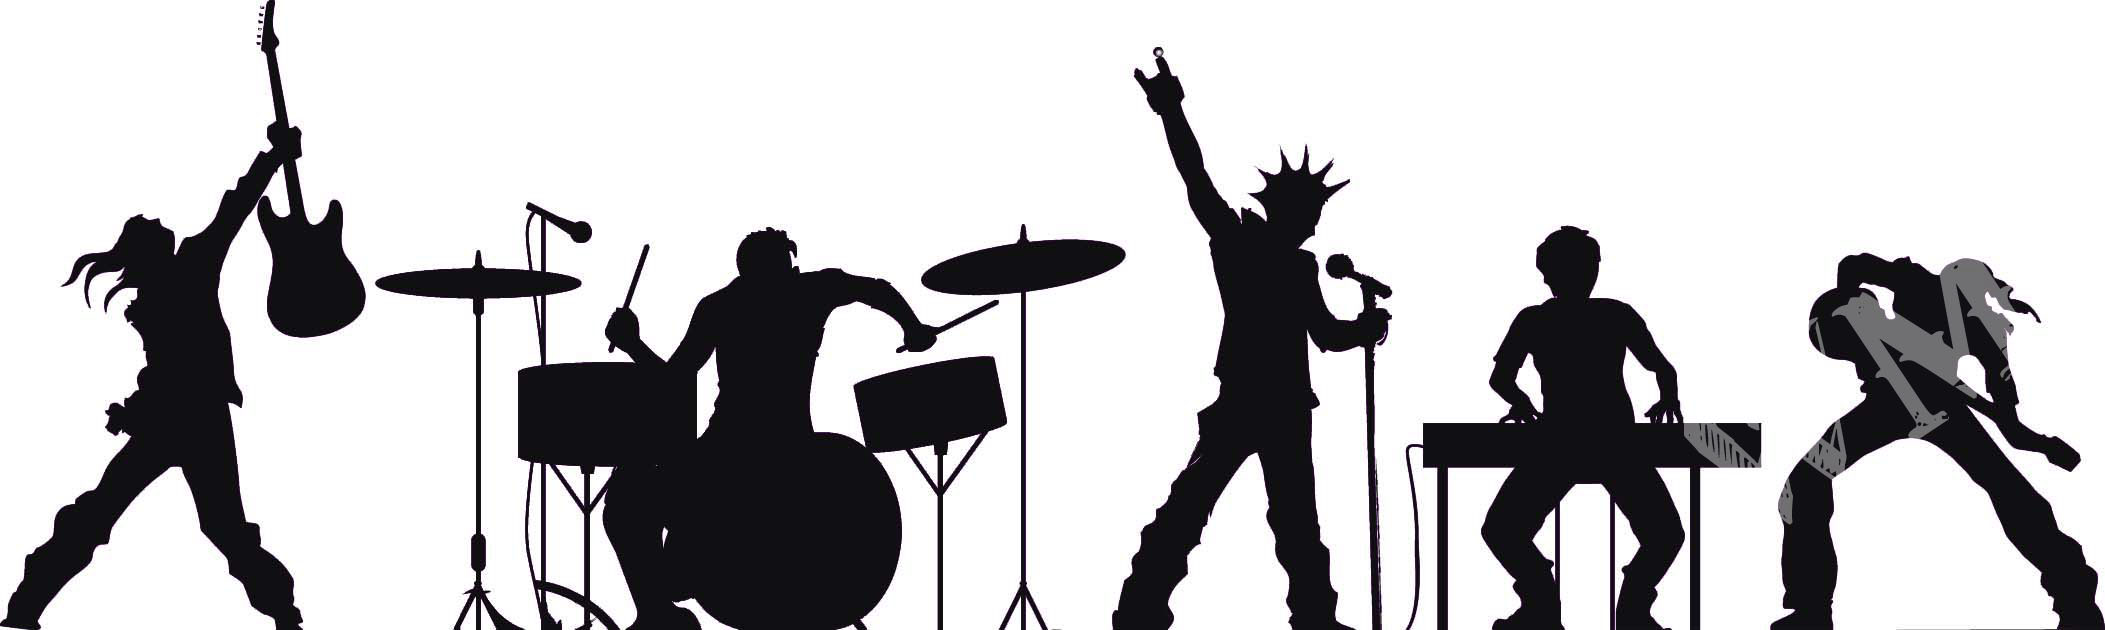 Rock band singer clipart clipart Free Live Band Cliparts, Download Free Clip Art, Free Clip Art on ... clipart